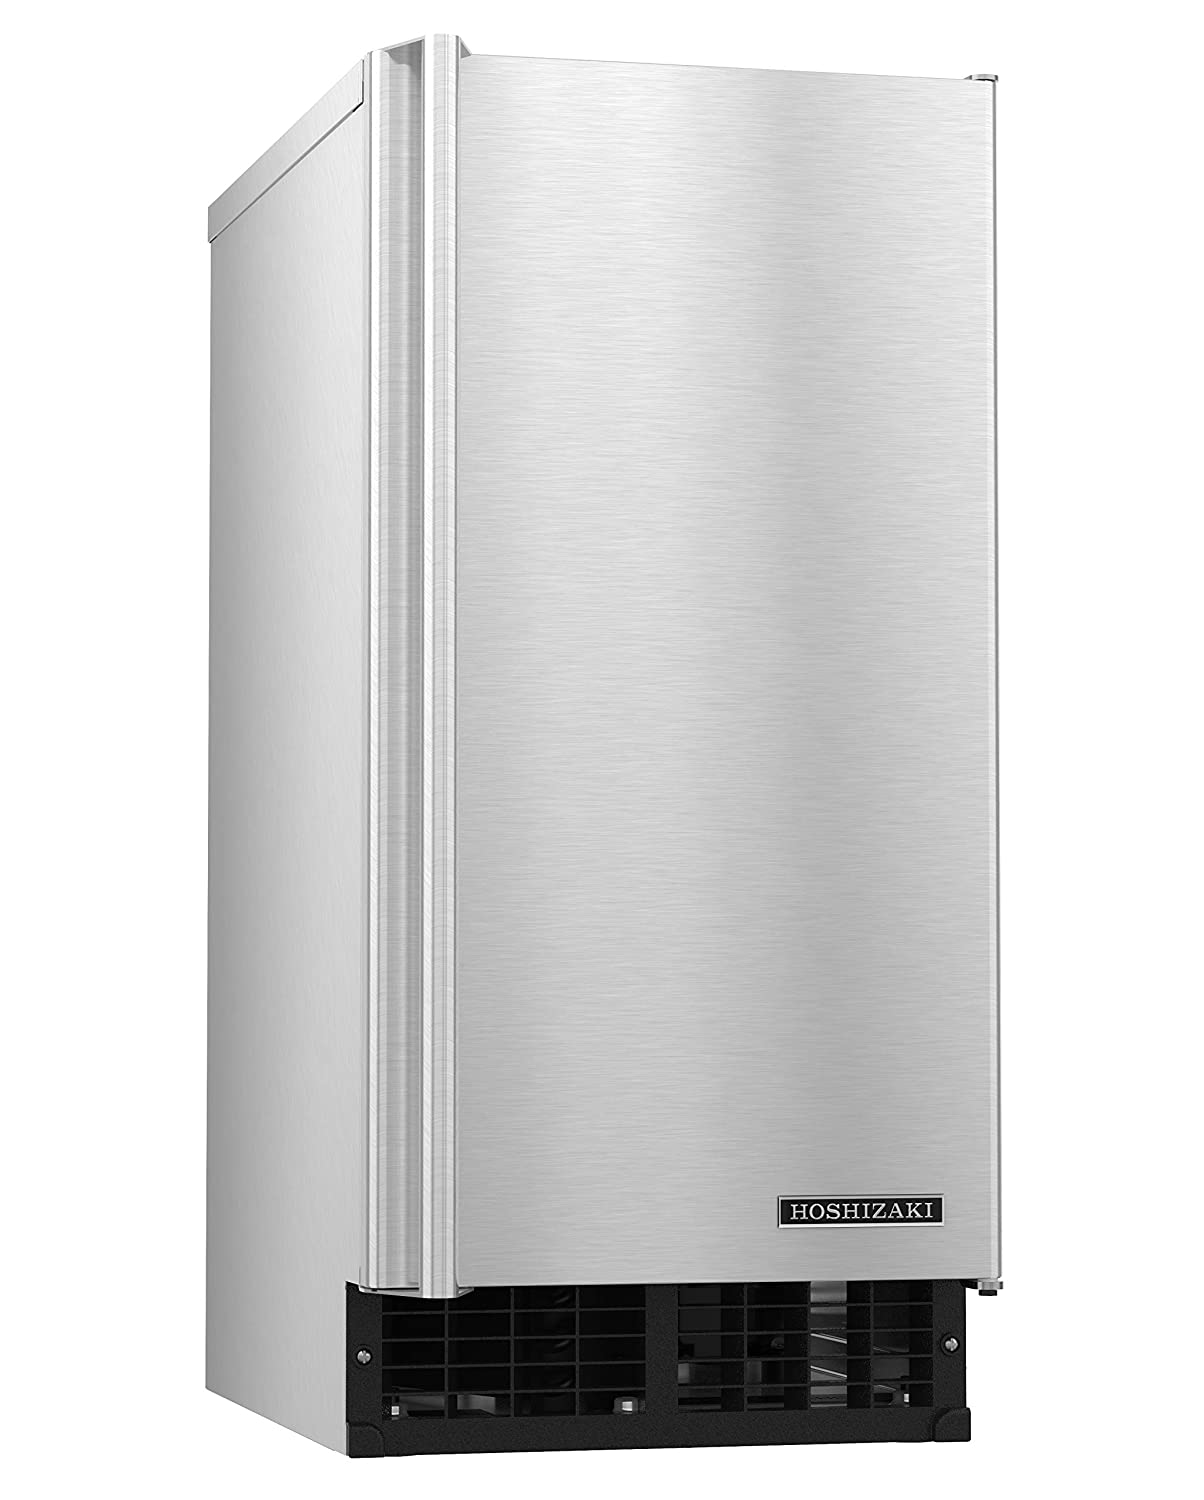 "C-80BAJ-AD 15"" Energy Star Rated Undercounter Self-Contained Cubelet Ice Maker With 92 lbs. Daily Ice Production 20 lbs. Built-In Storage Capacity Reversible Door and Front Access: Stainless Steel"